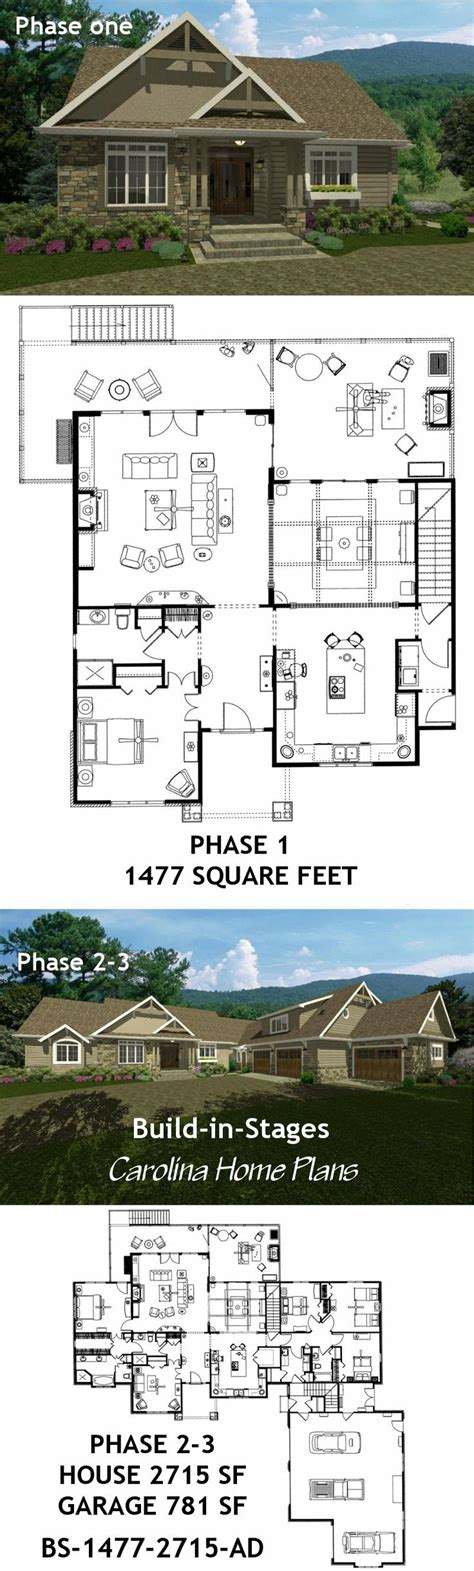 house plans that can be built in stages plan to build a house stages house plans